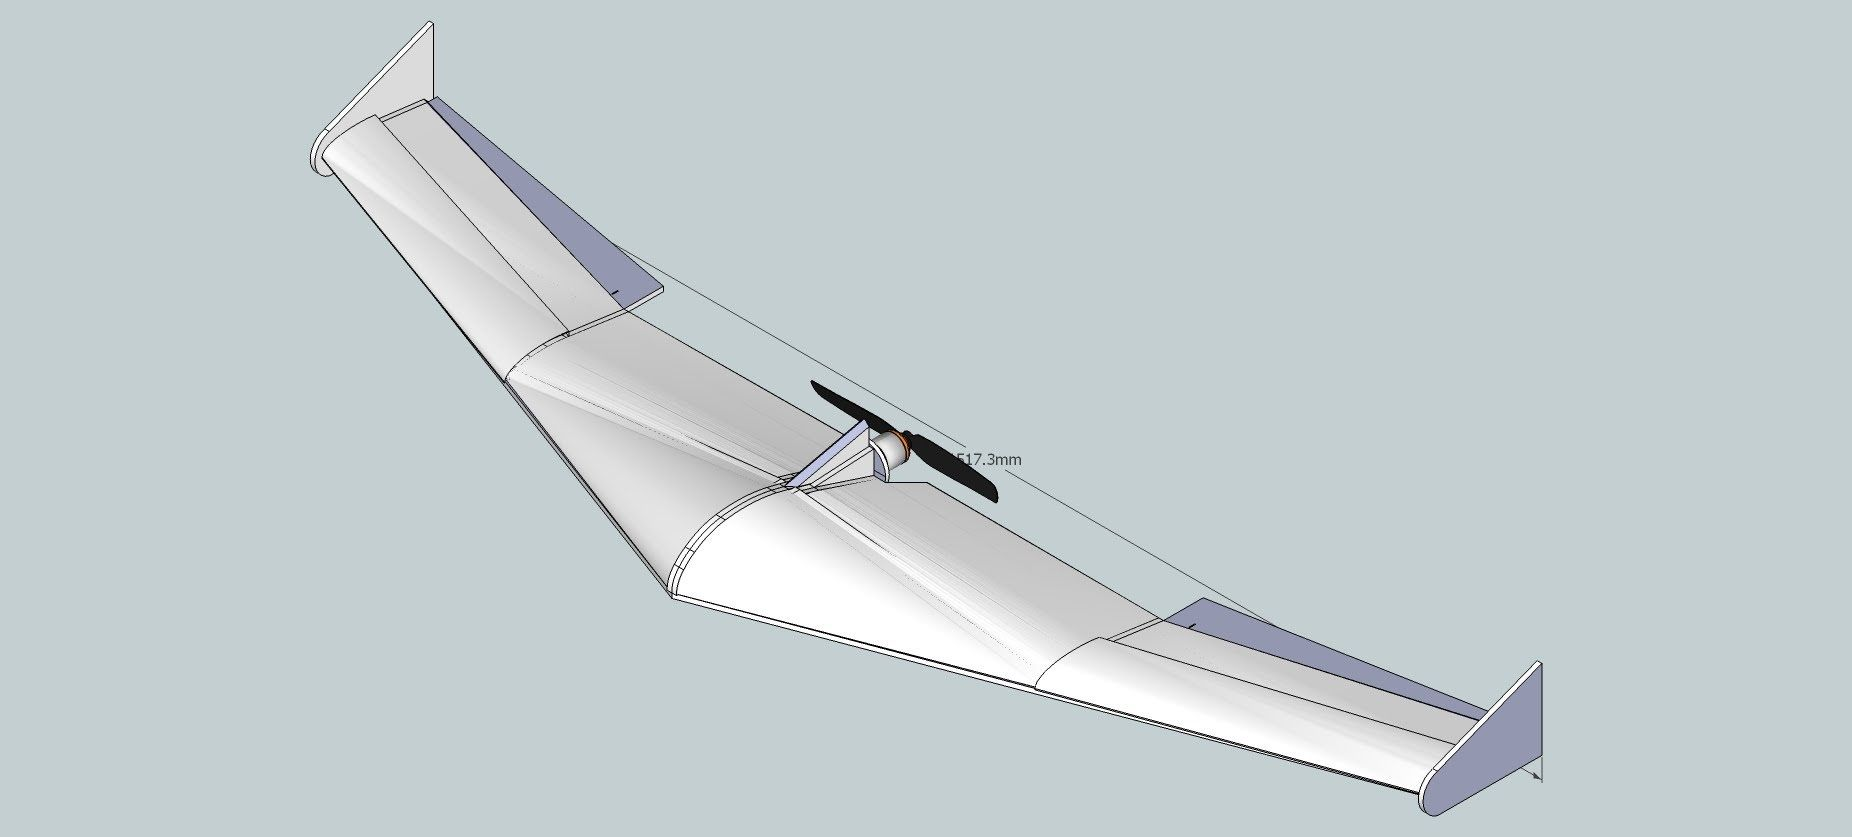 1500mm Flying Wing Designed In Google Sketchup And How To Create Pdf Plans From Sketchup Wings Design Flying Wing Wings